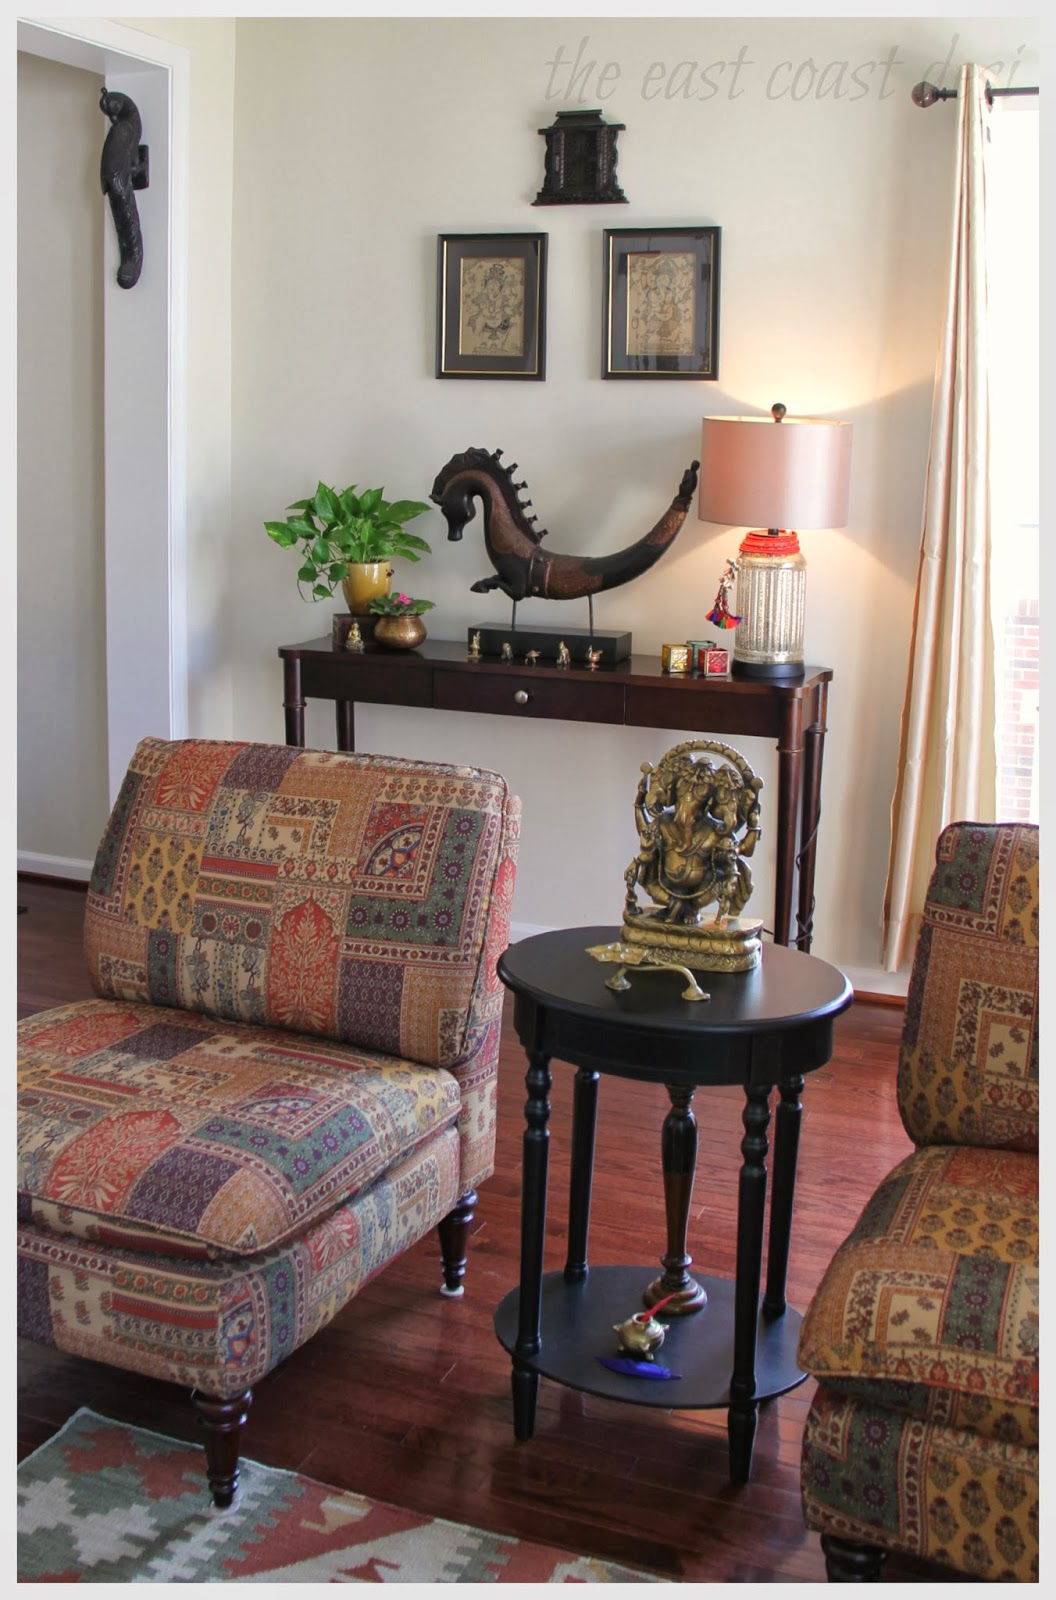 The east coast desi my living room a reflection of india for Interior design ideas living room indian style